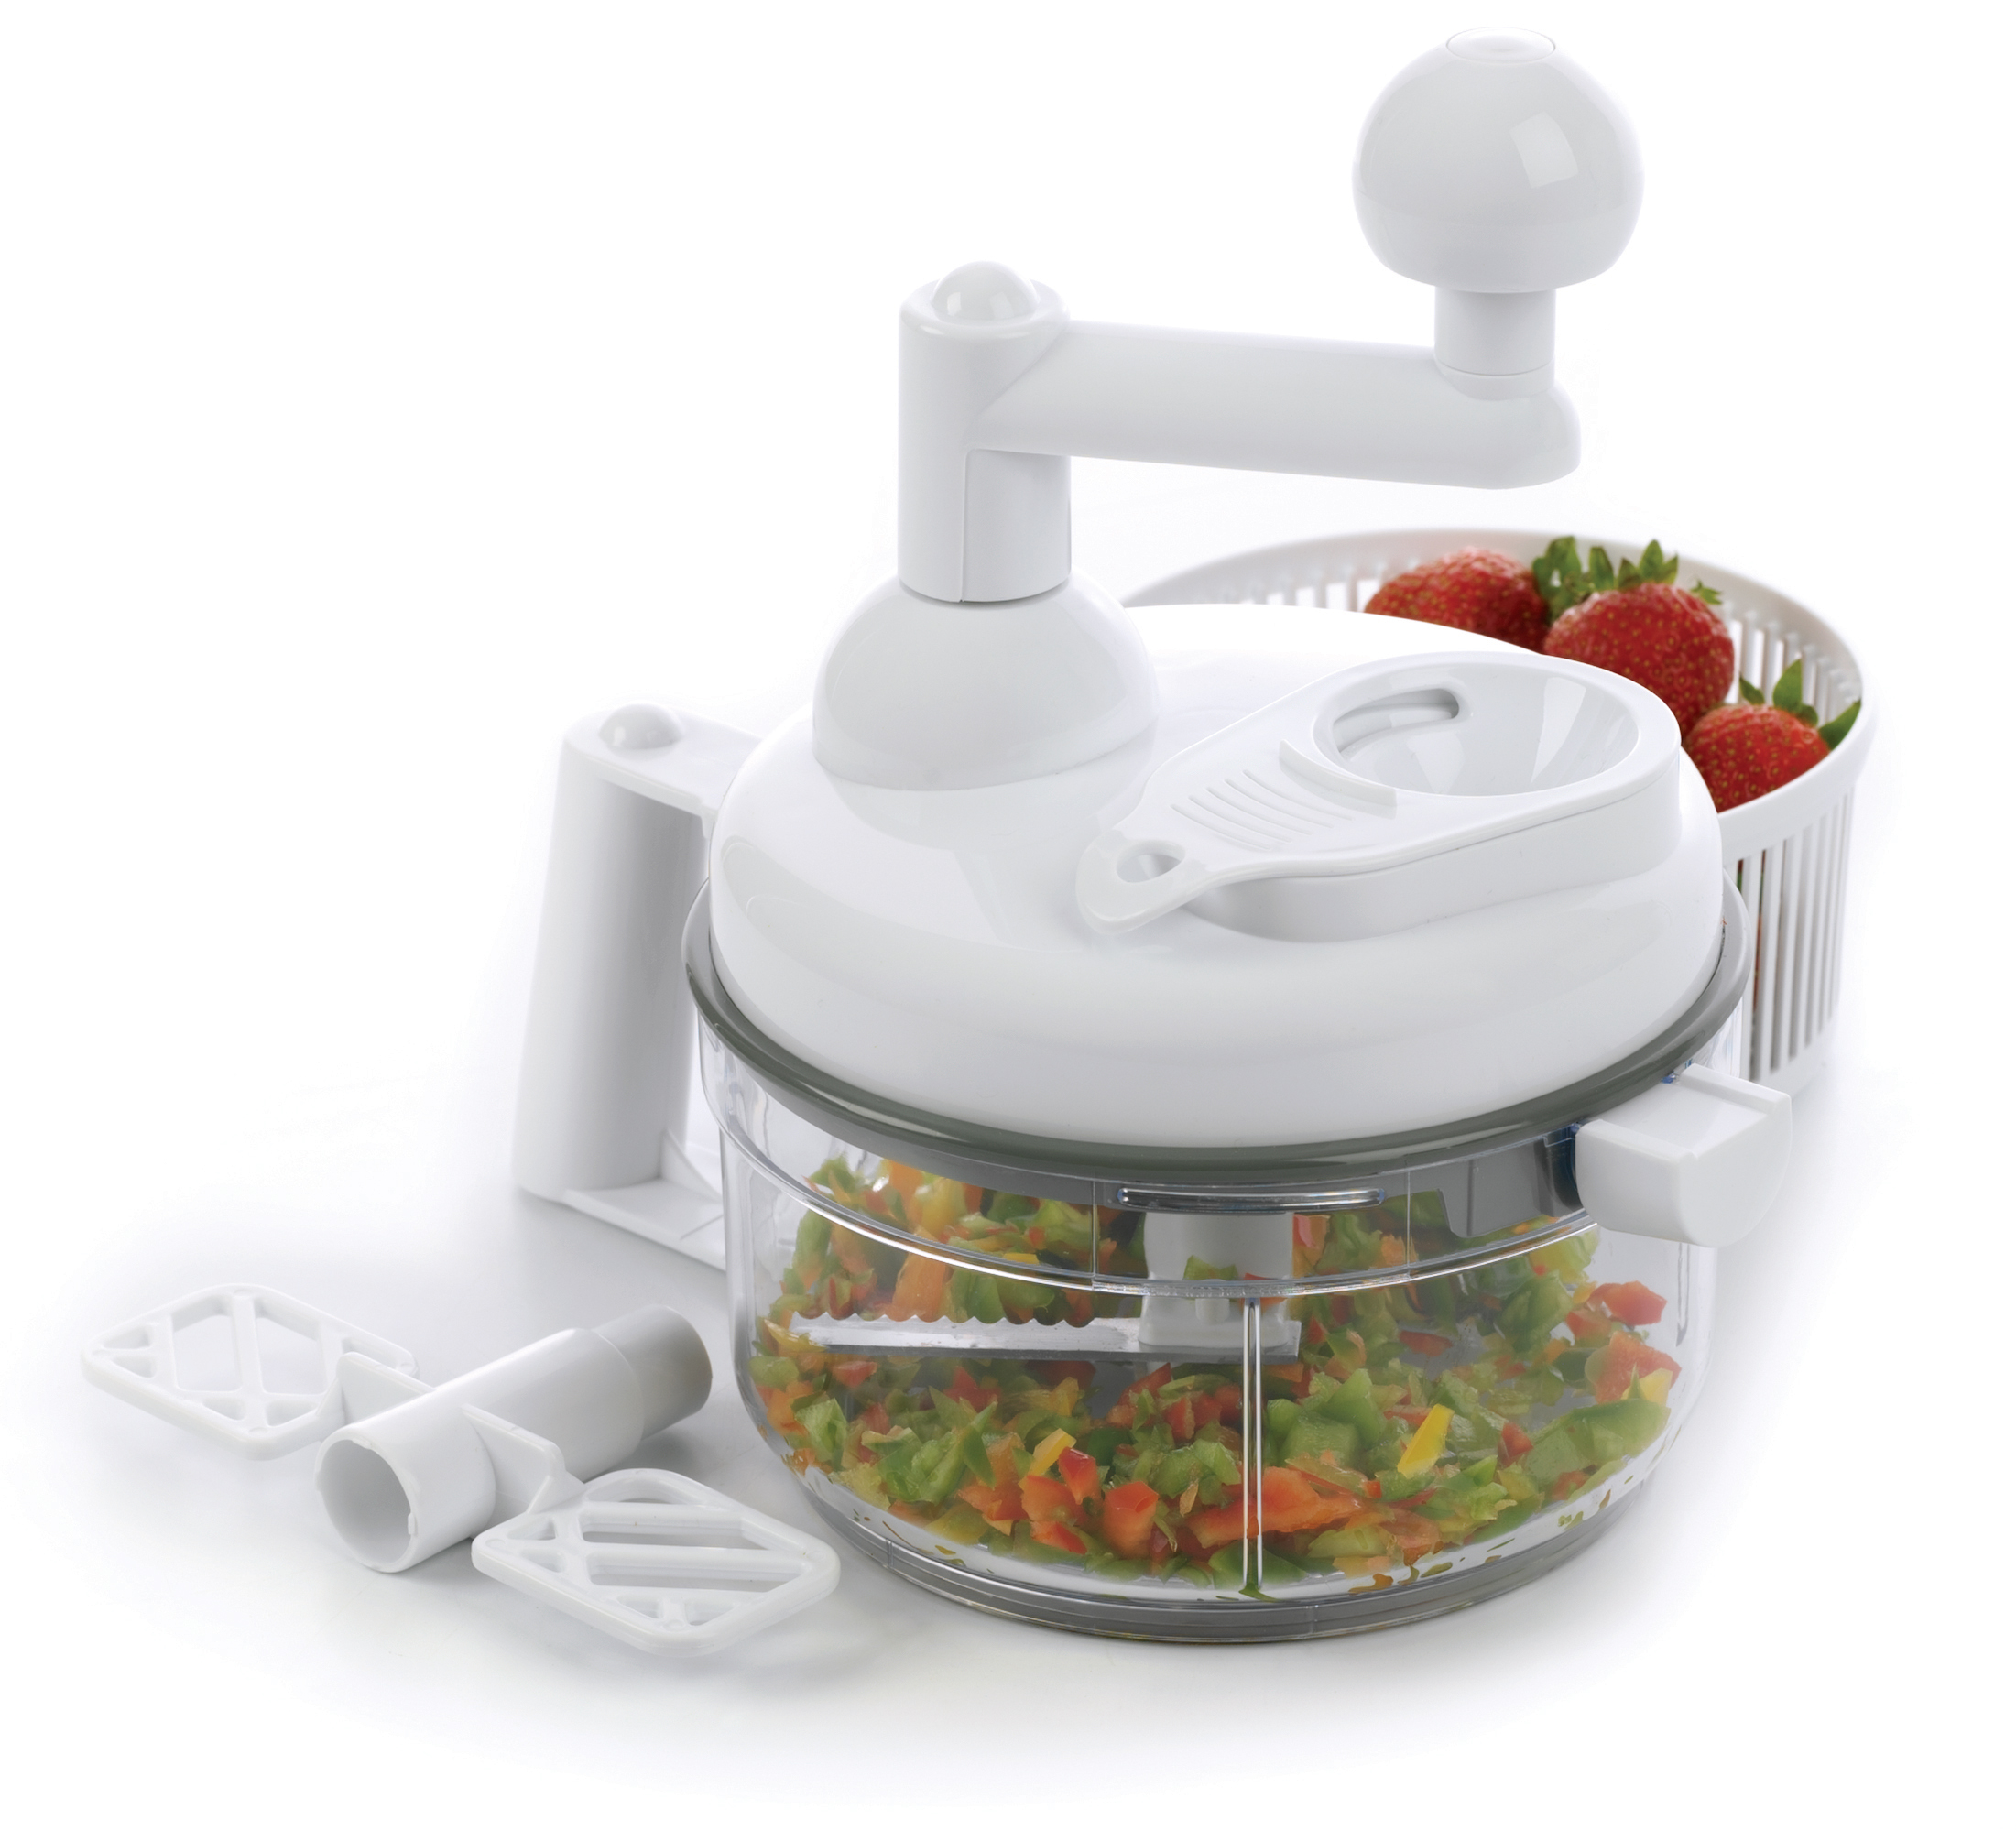 What Is The Best Small Manual Food Chopper